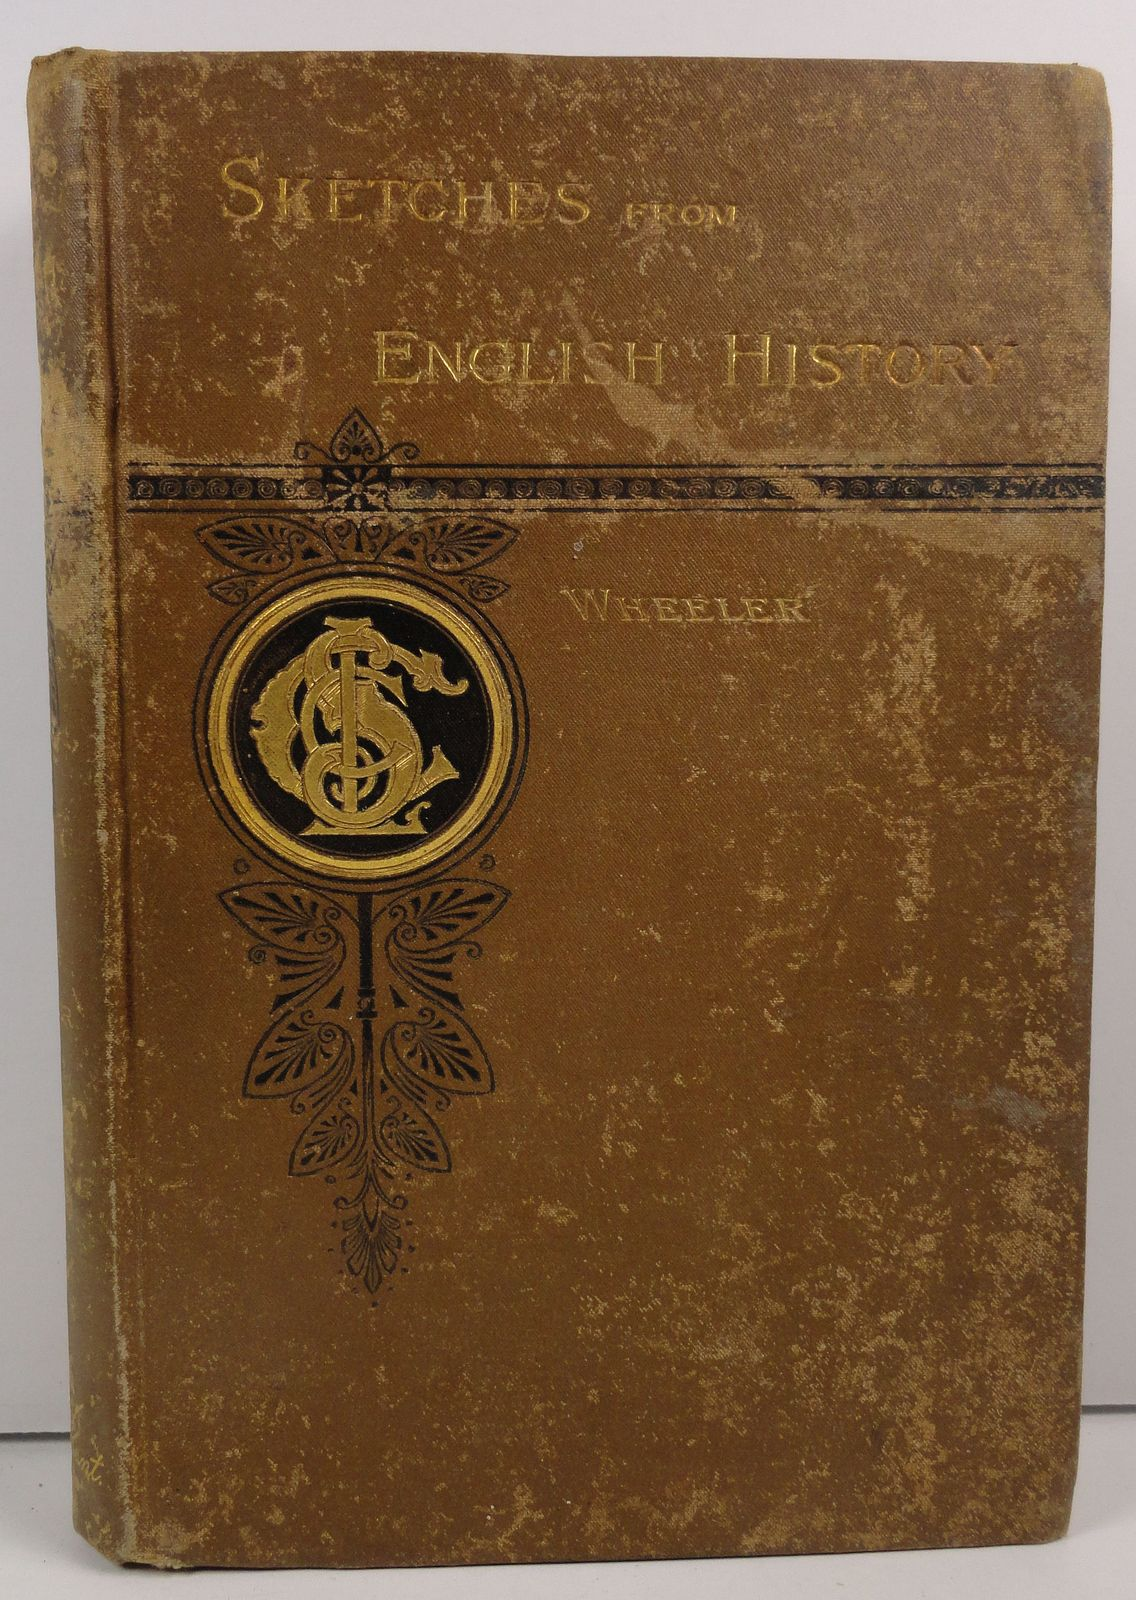 Sketches from English History by Arthur M. Wheeler 1886